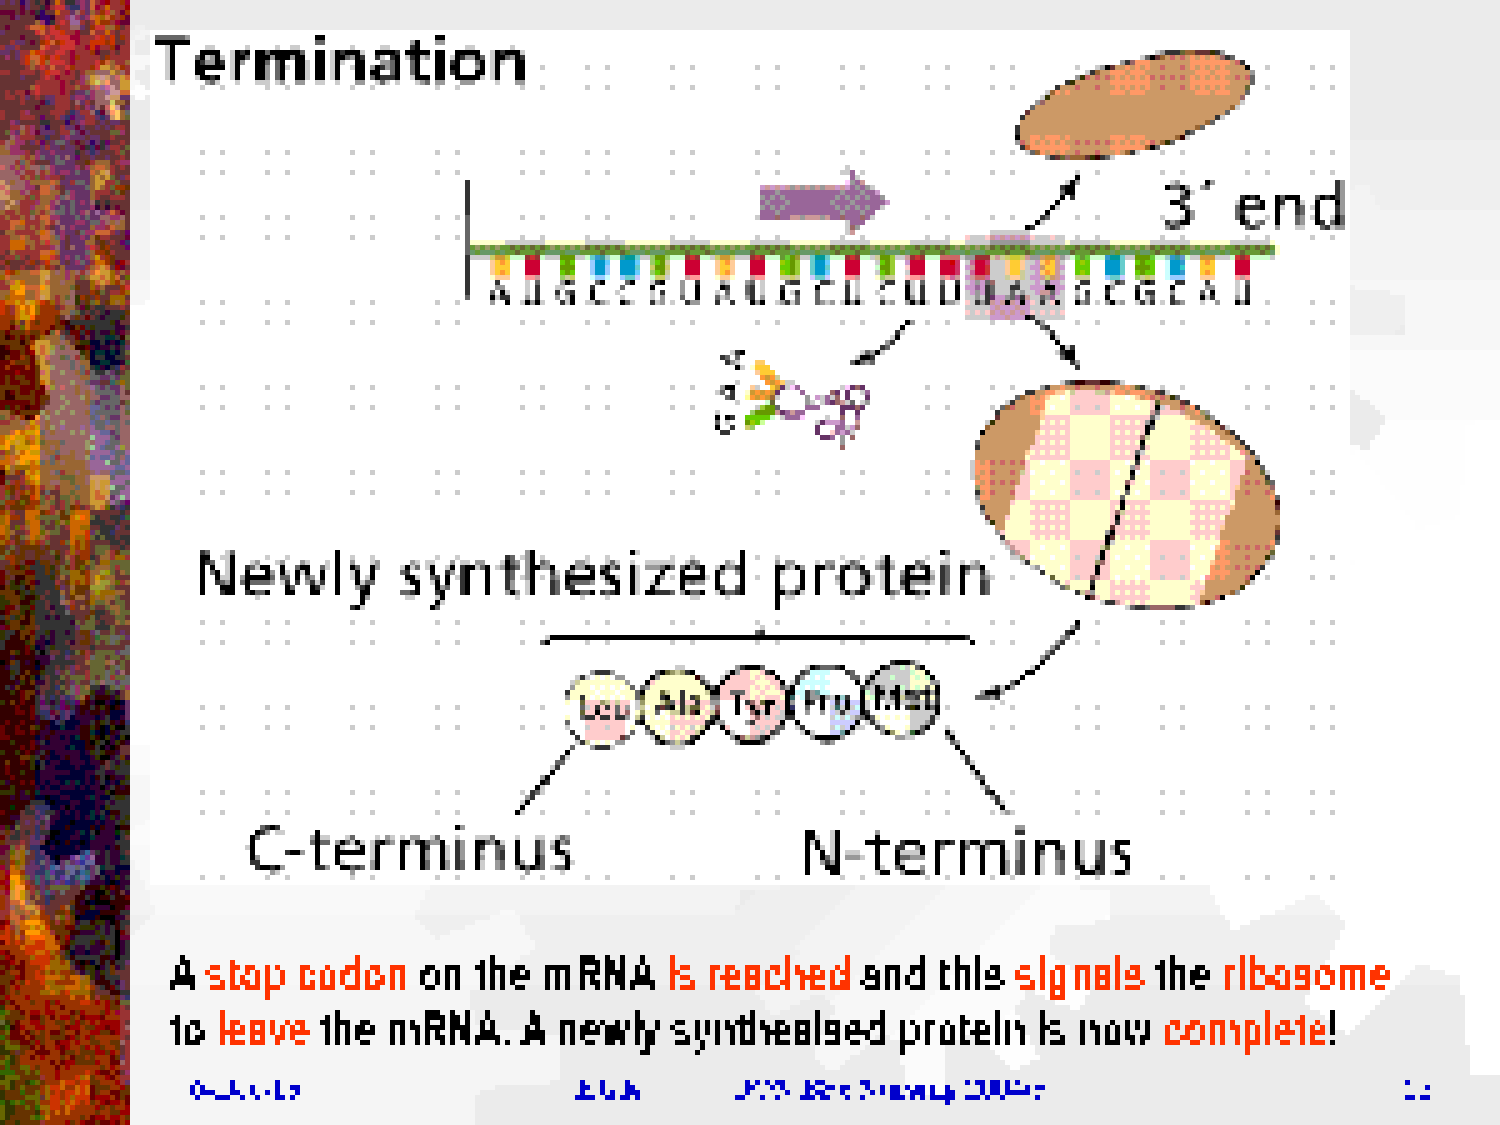 protein biosynthesis Protein biosynthesis (synthesis) is the process in which cells build proteinsthe term is sometimes used to refer only to protein translation but more often it refers to a multi-step process, beginning with amino acid synthesis and transcription which are then used for translation.